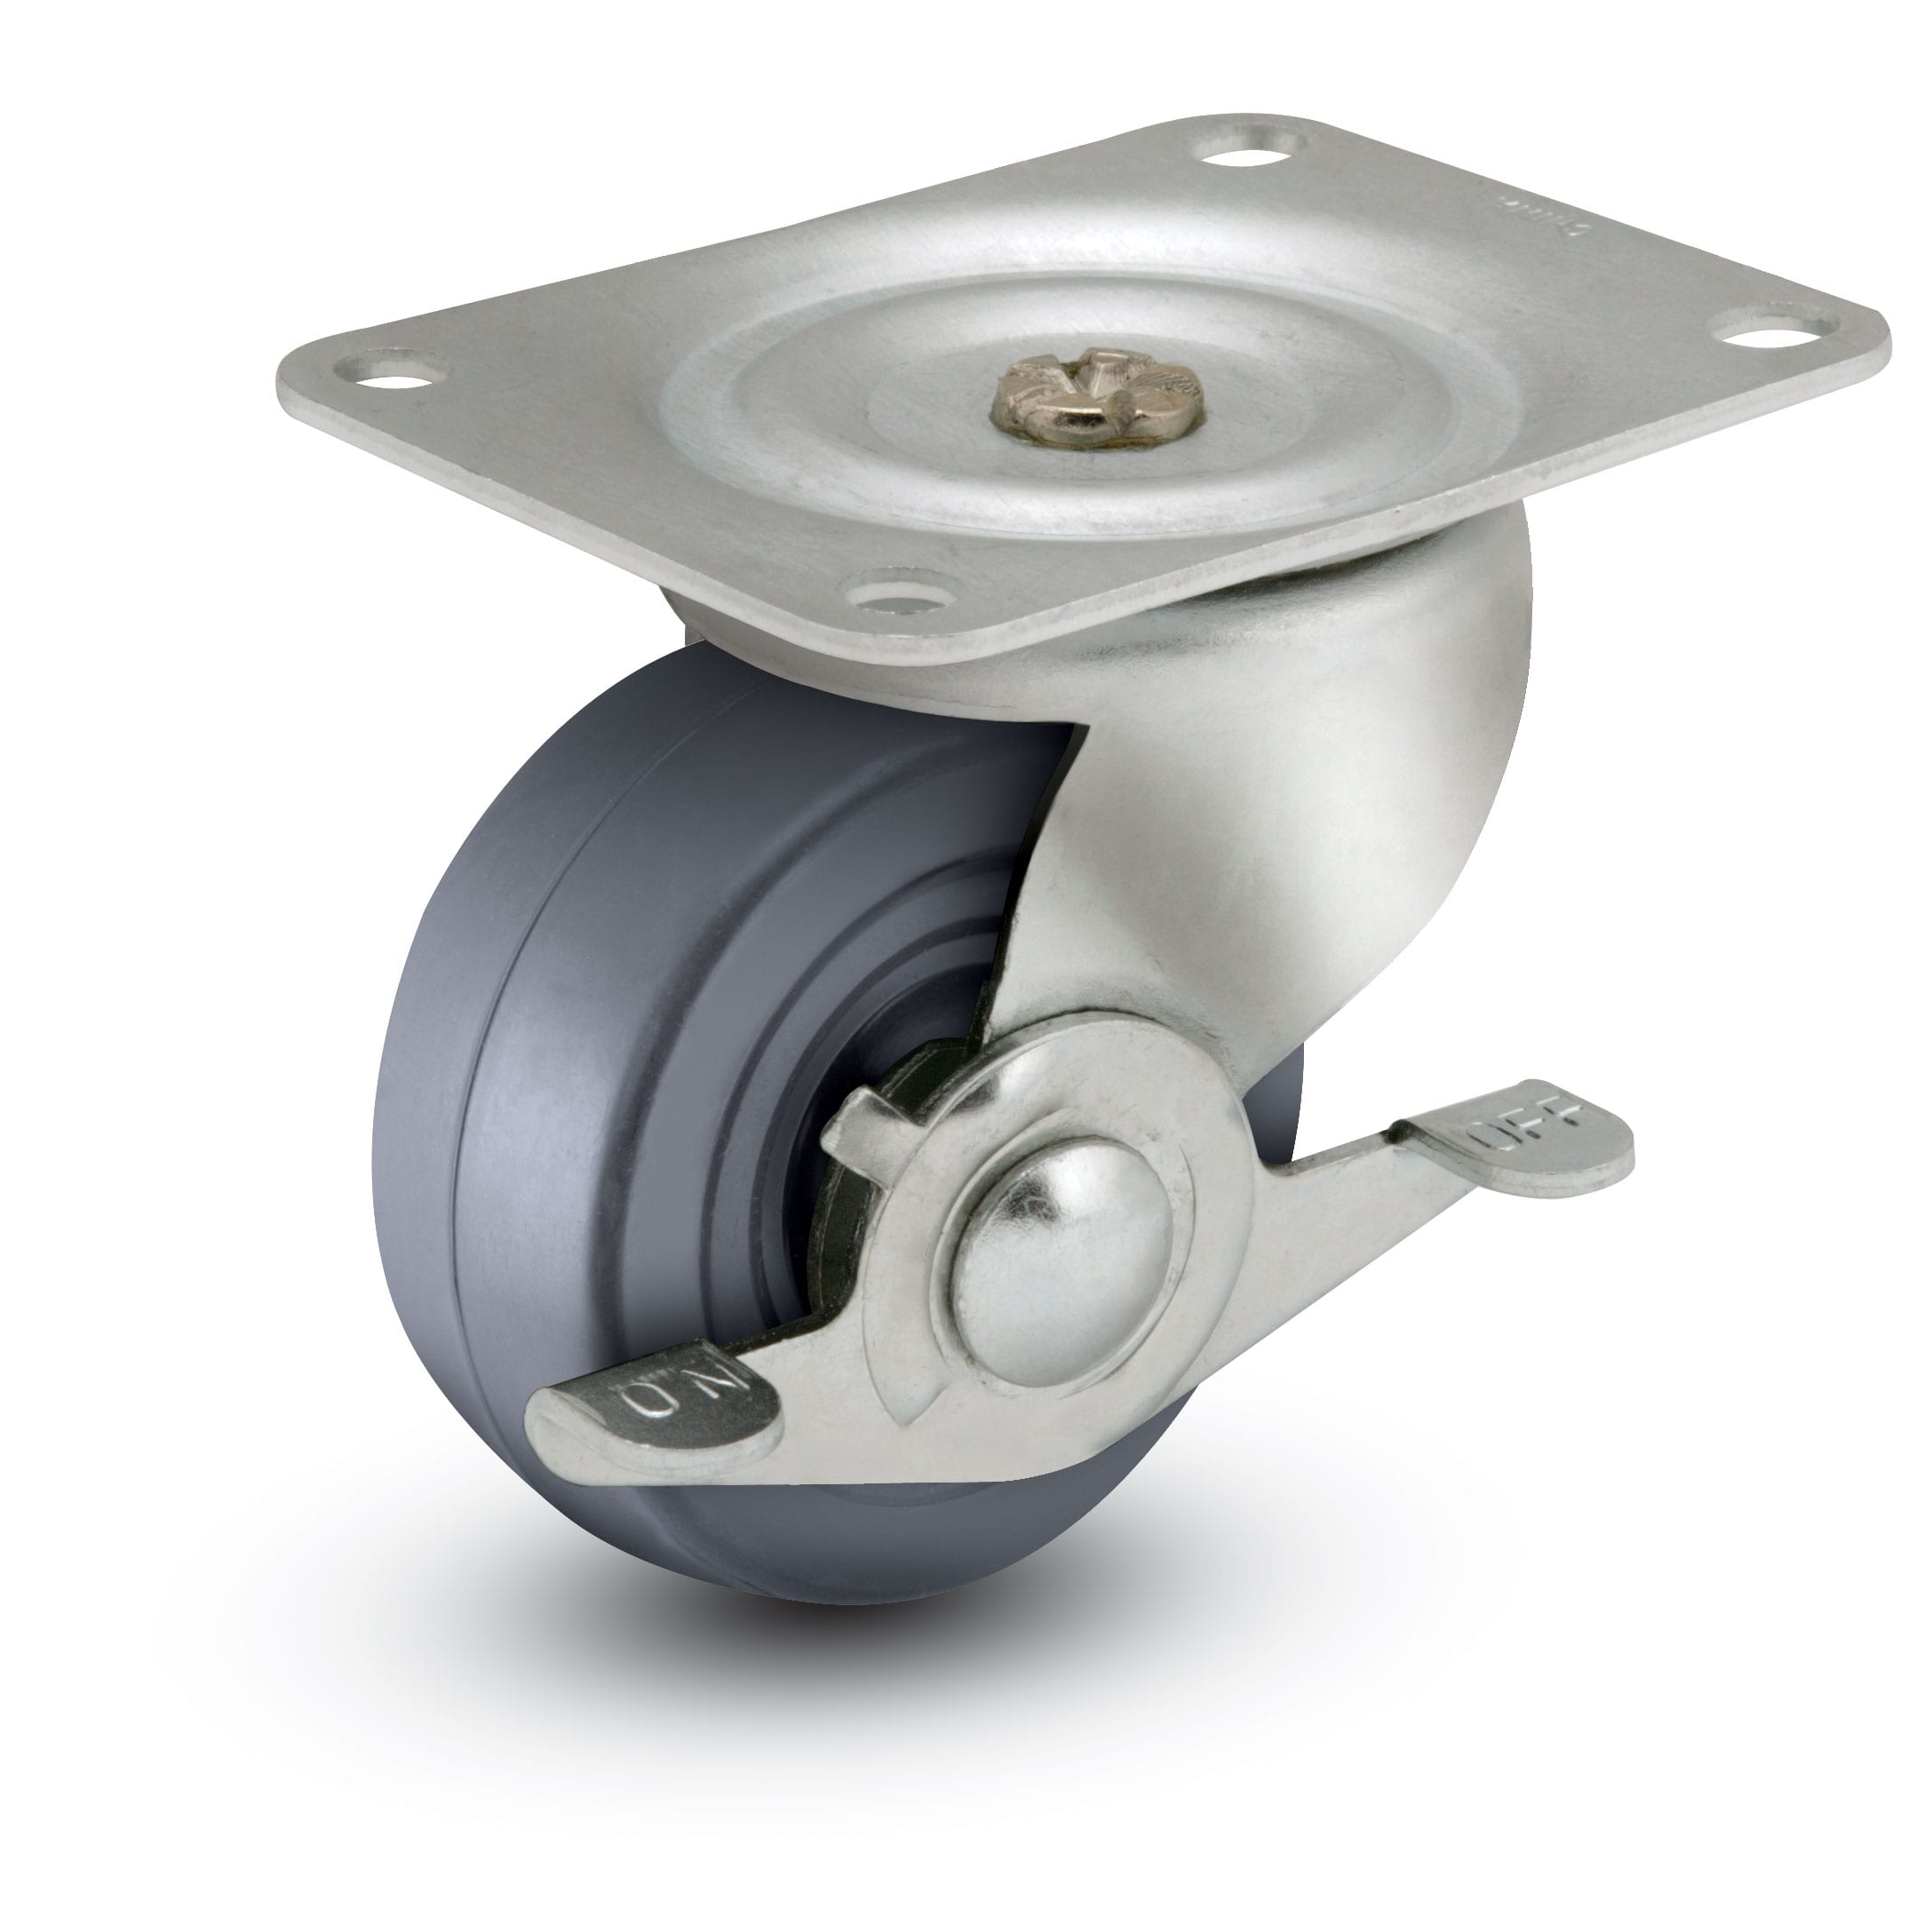 Casters And Wheels Steel Casters And Wheels